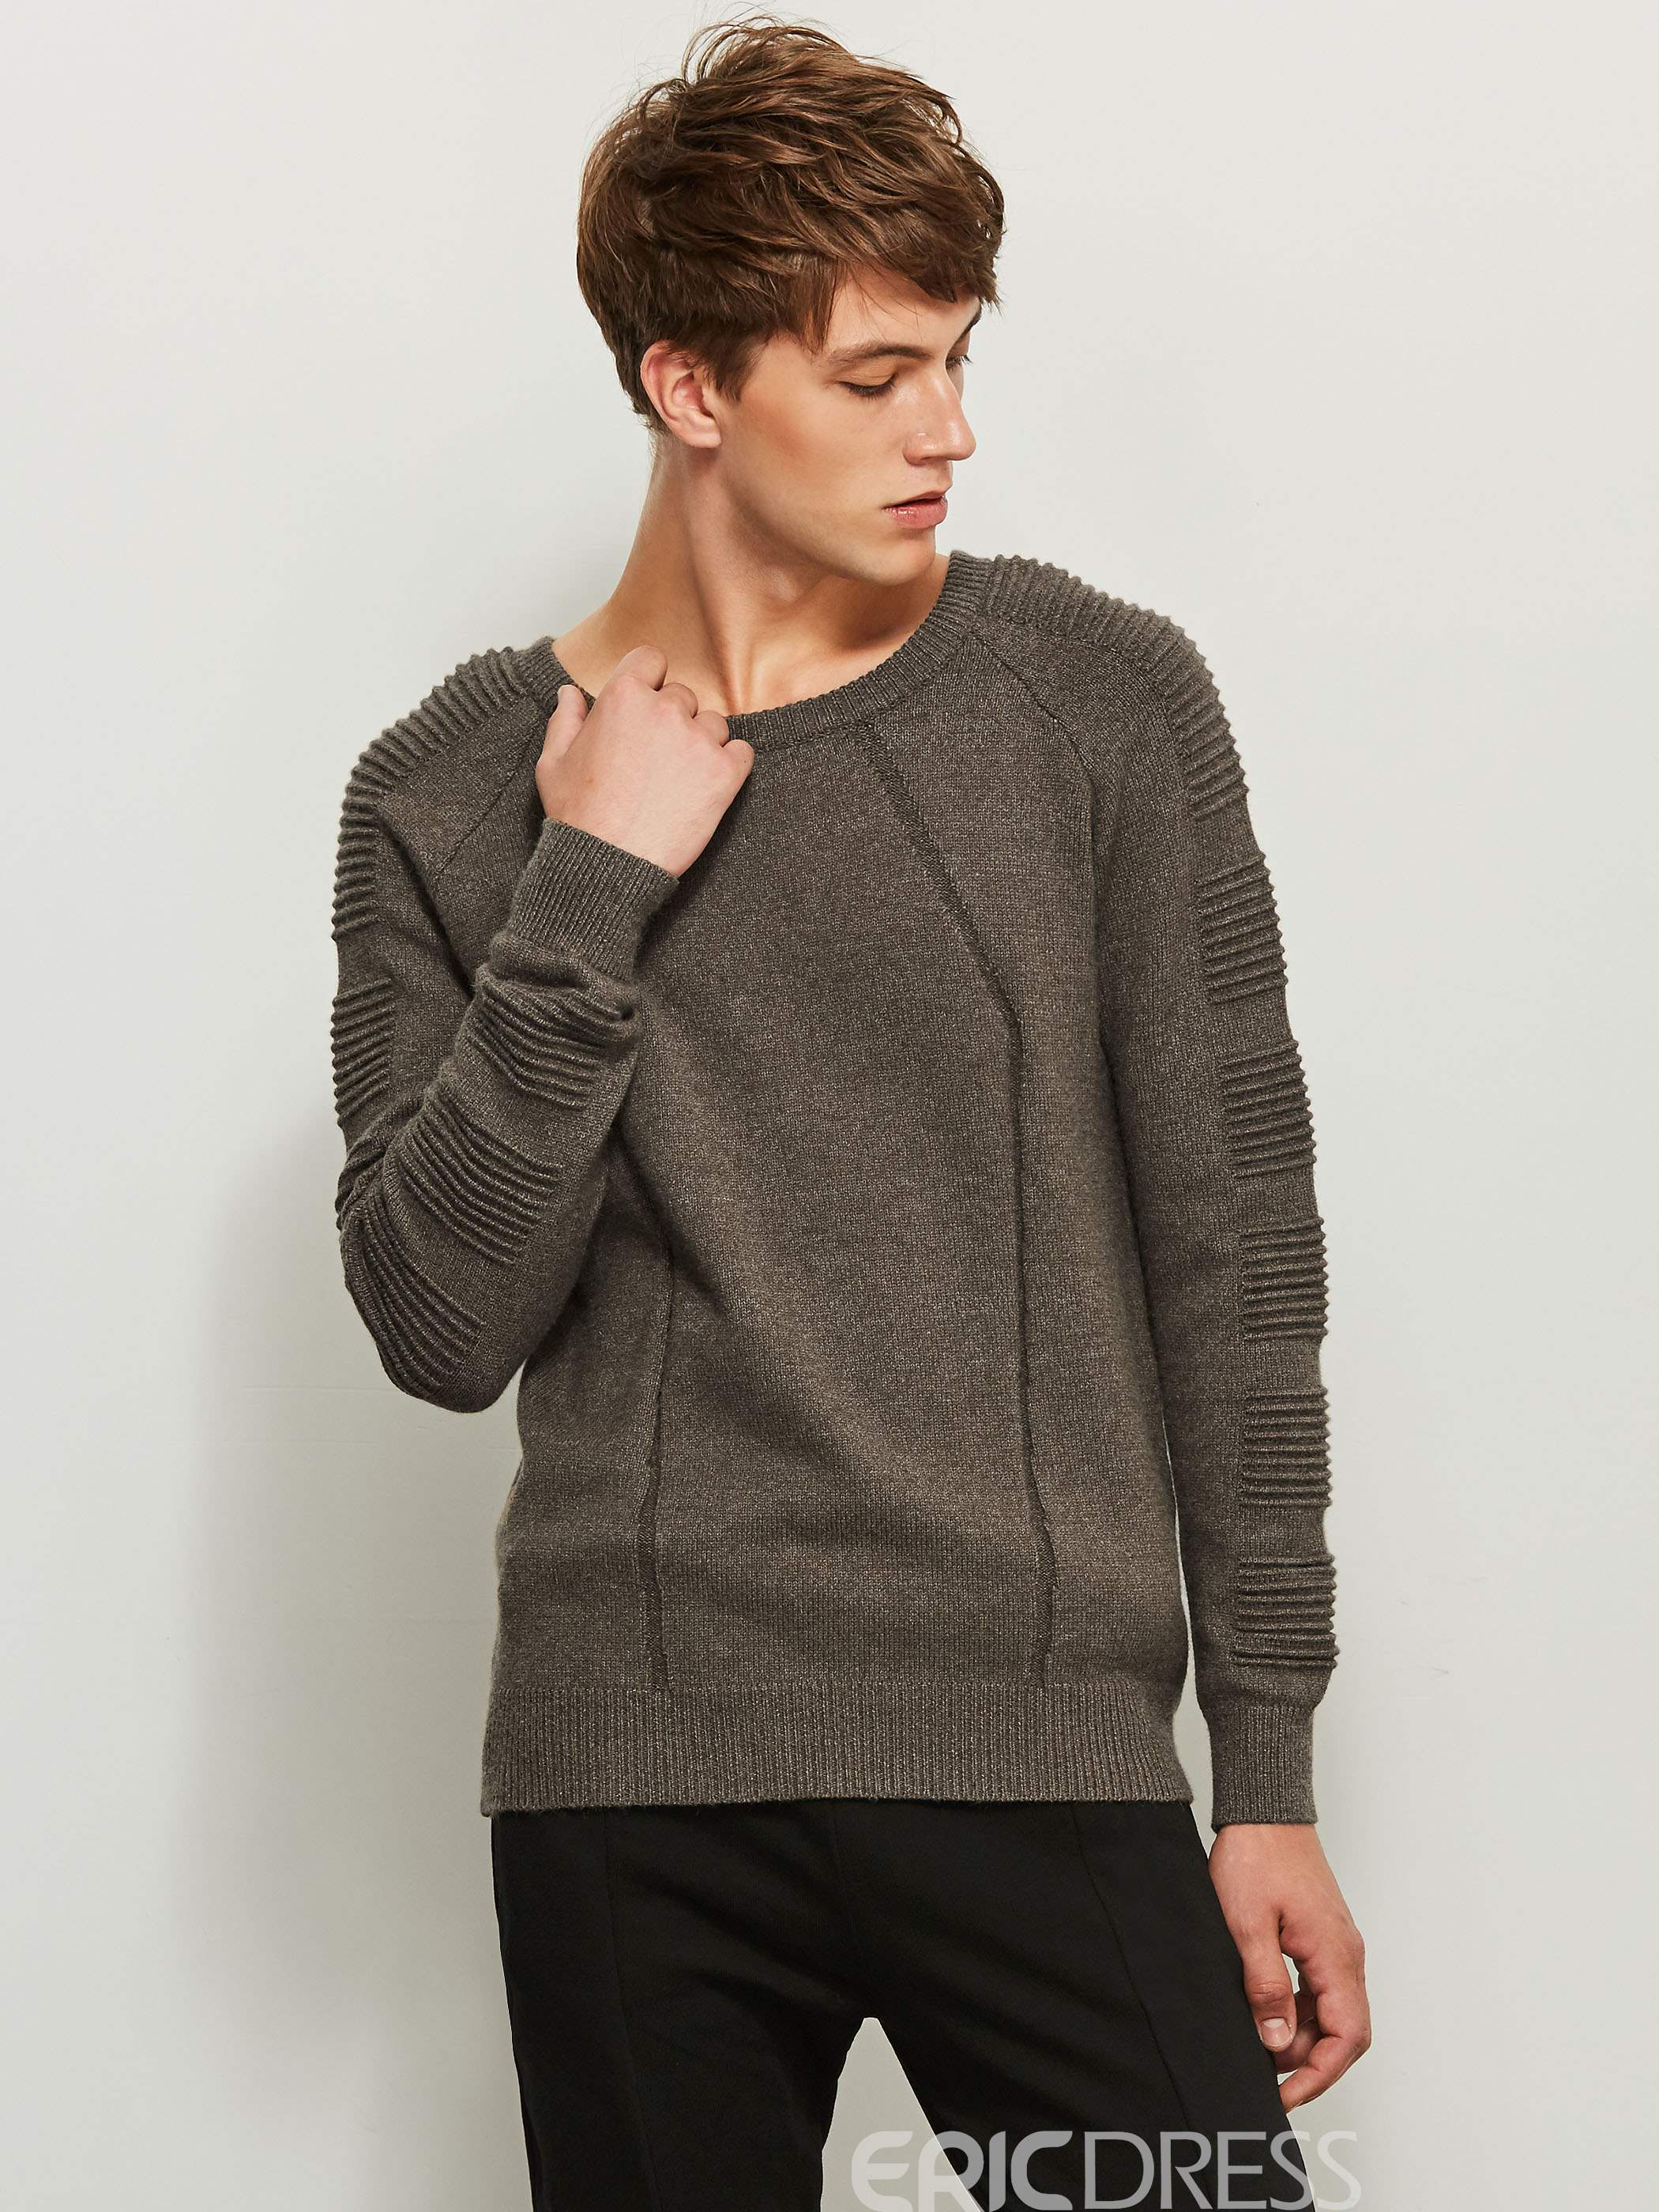 Ericdress Round Neck Solid Color Long Sleeve Men's Sweater